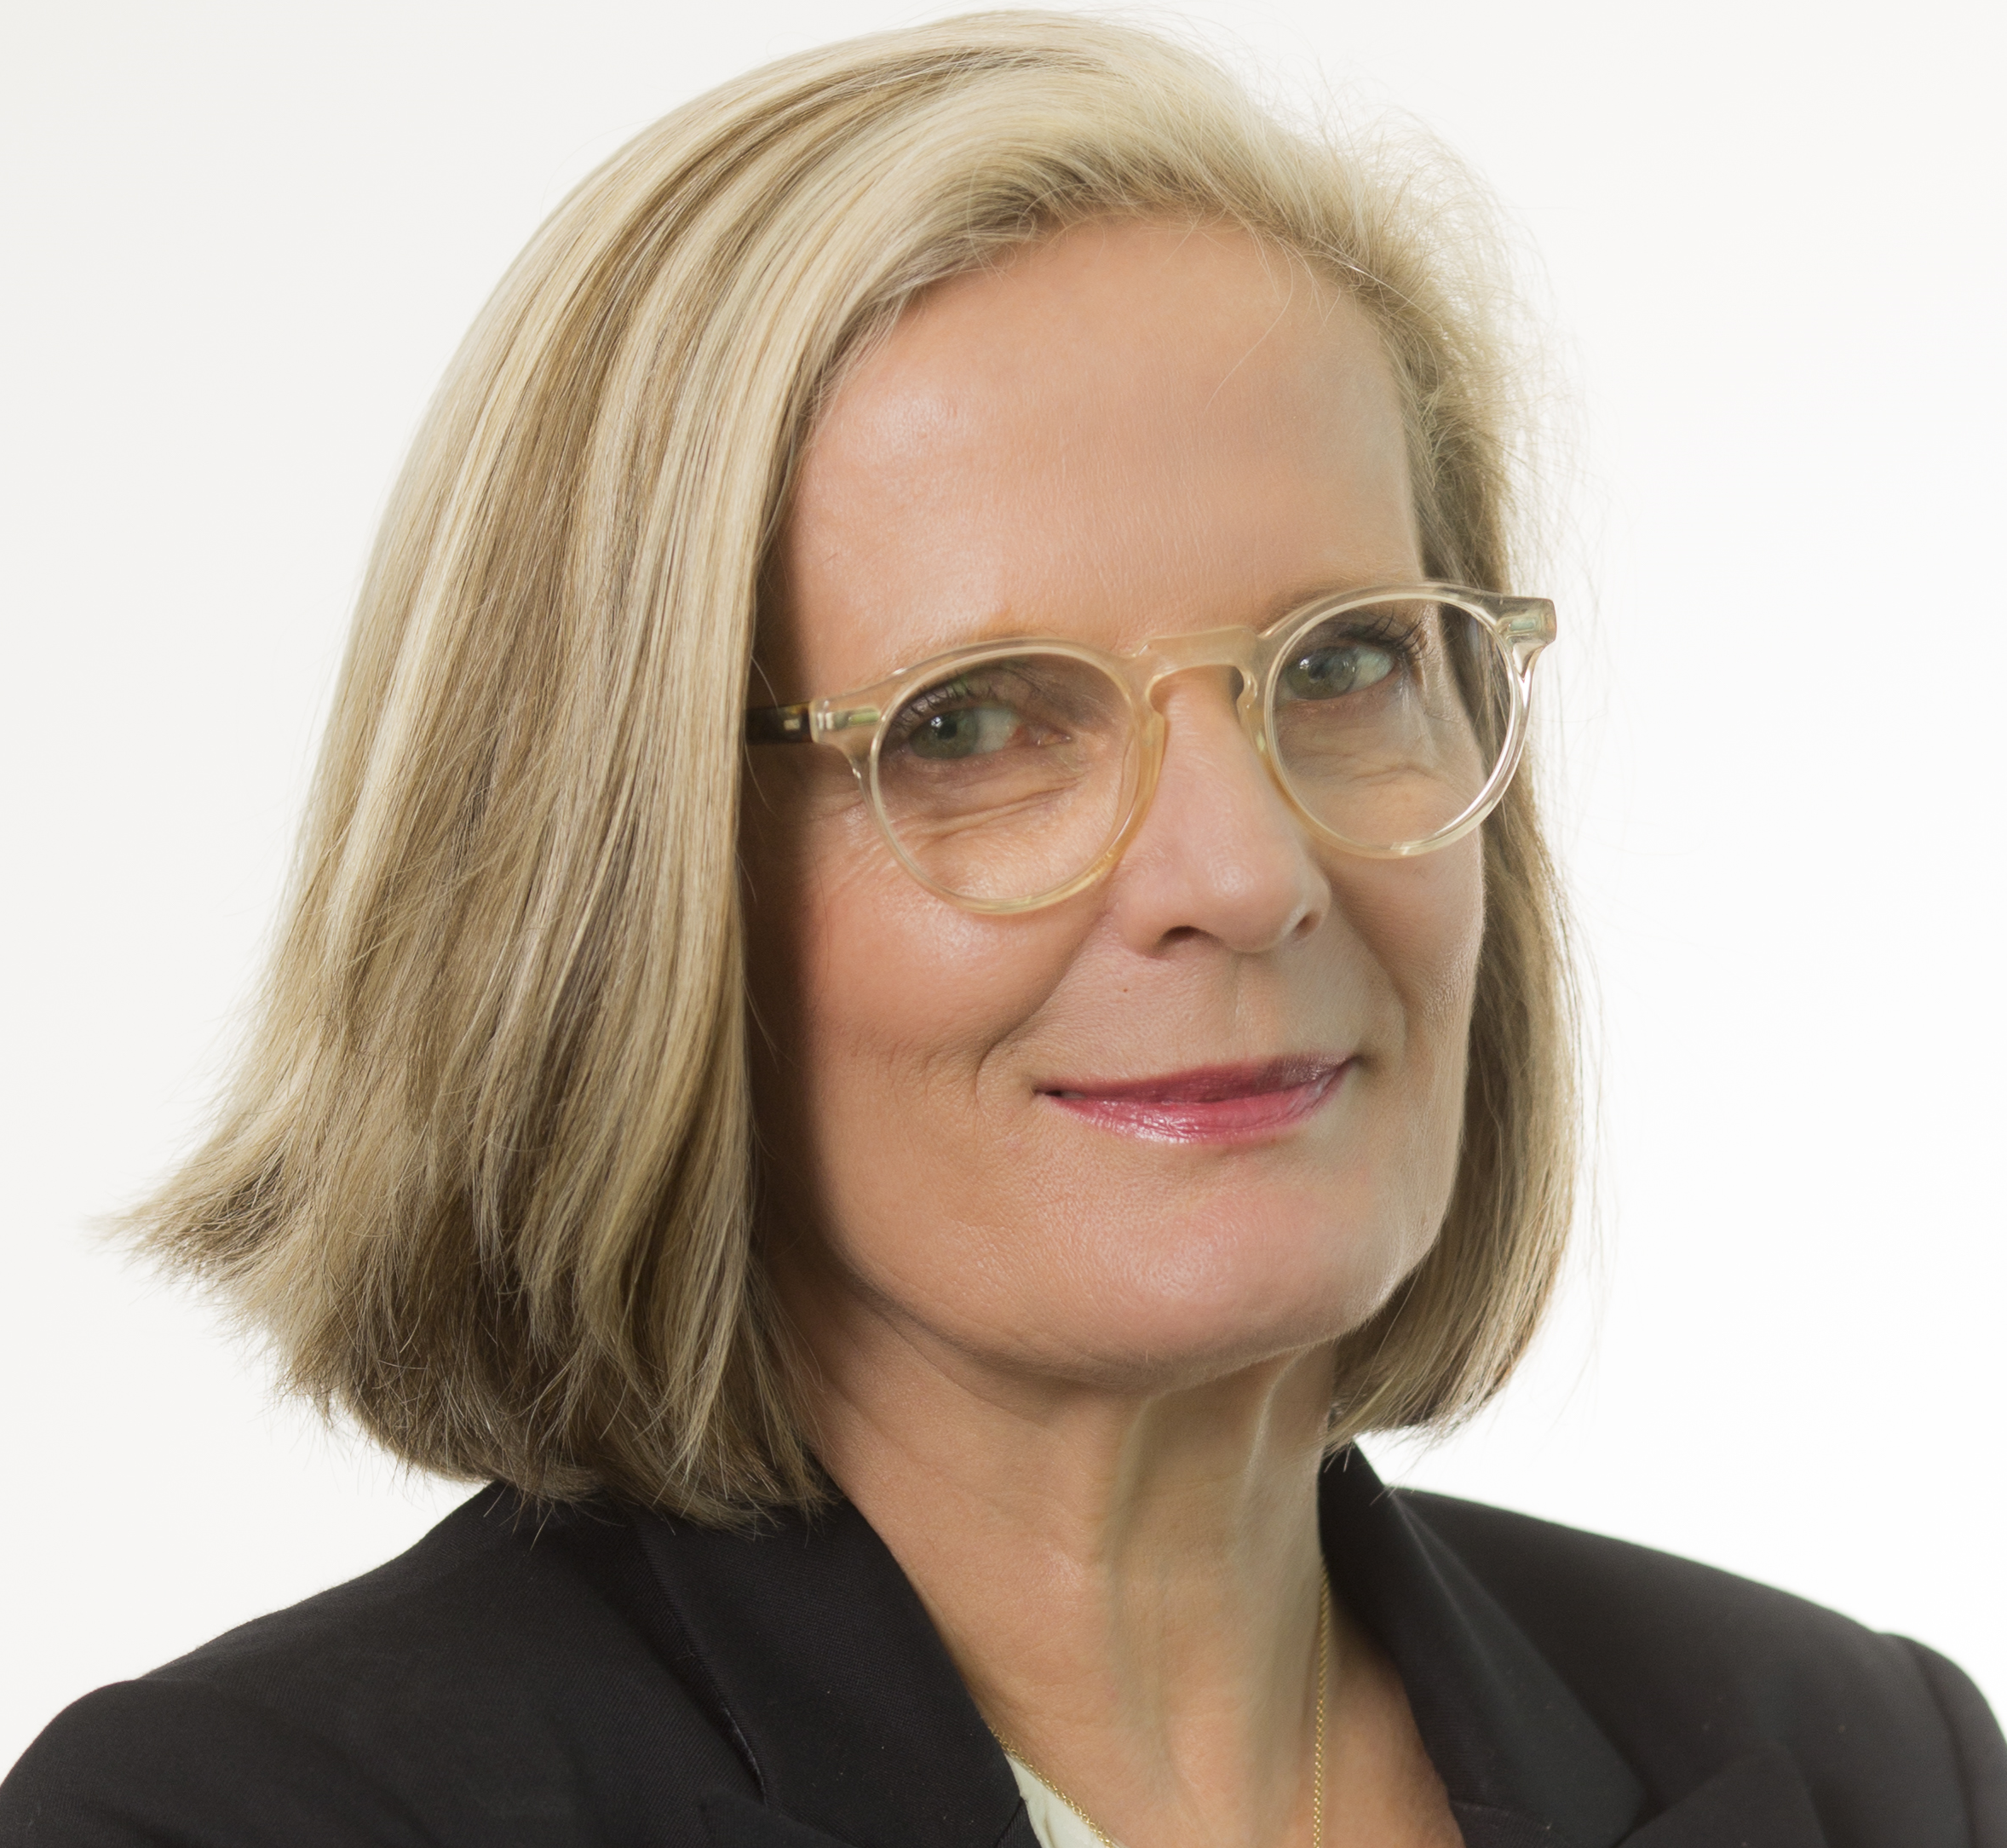 Lucy Turnbull AO